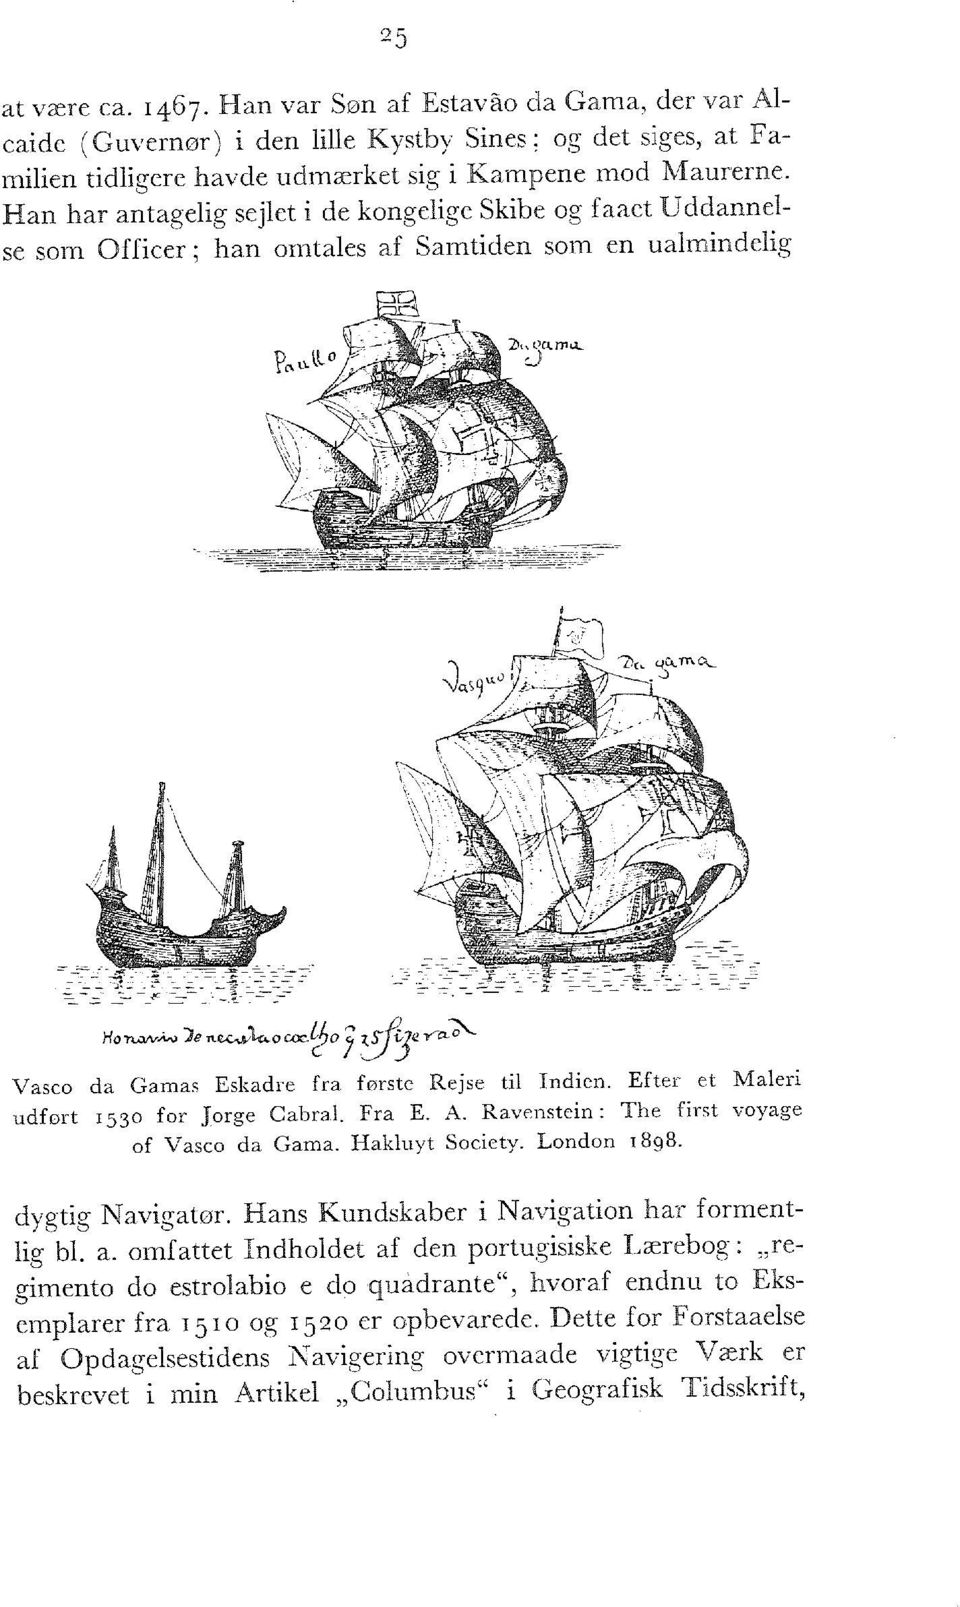 tf}o 2 \SJS2 liy ~ a ~ Vasco da Gamas Eskadre fra første Rejse til Indien. Efter et Maleri udført 1530 for Jorge Cabral. Fra E. A. Ravenstein: The first voyage of Vasco da Gama. Hakluyt Society.